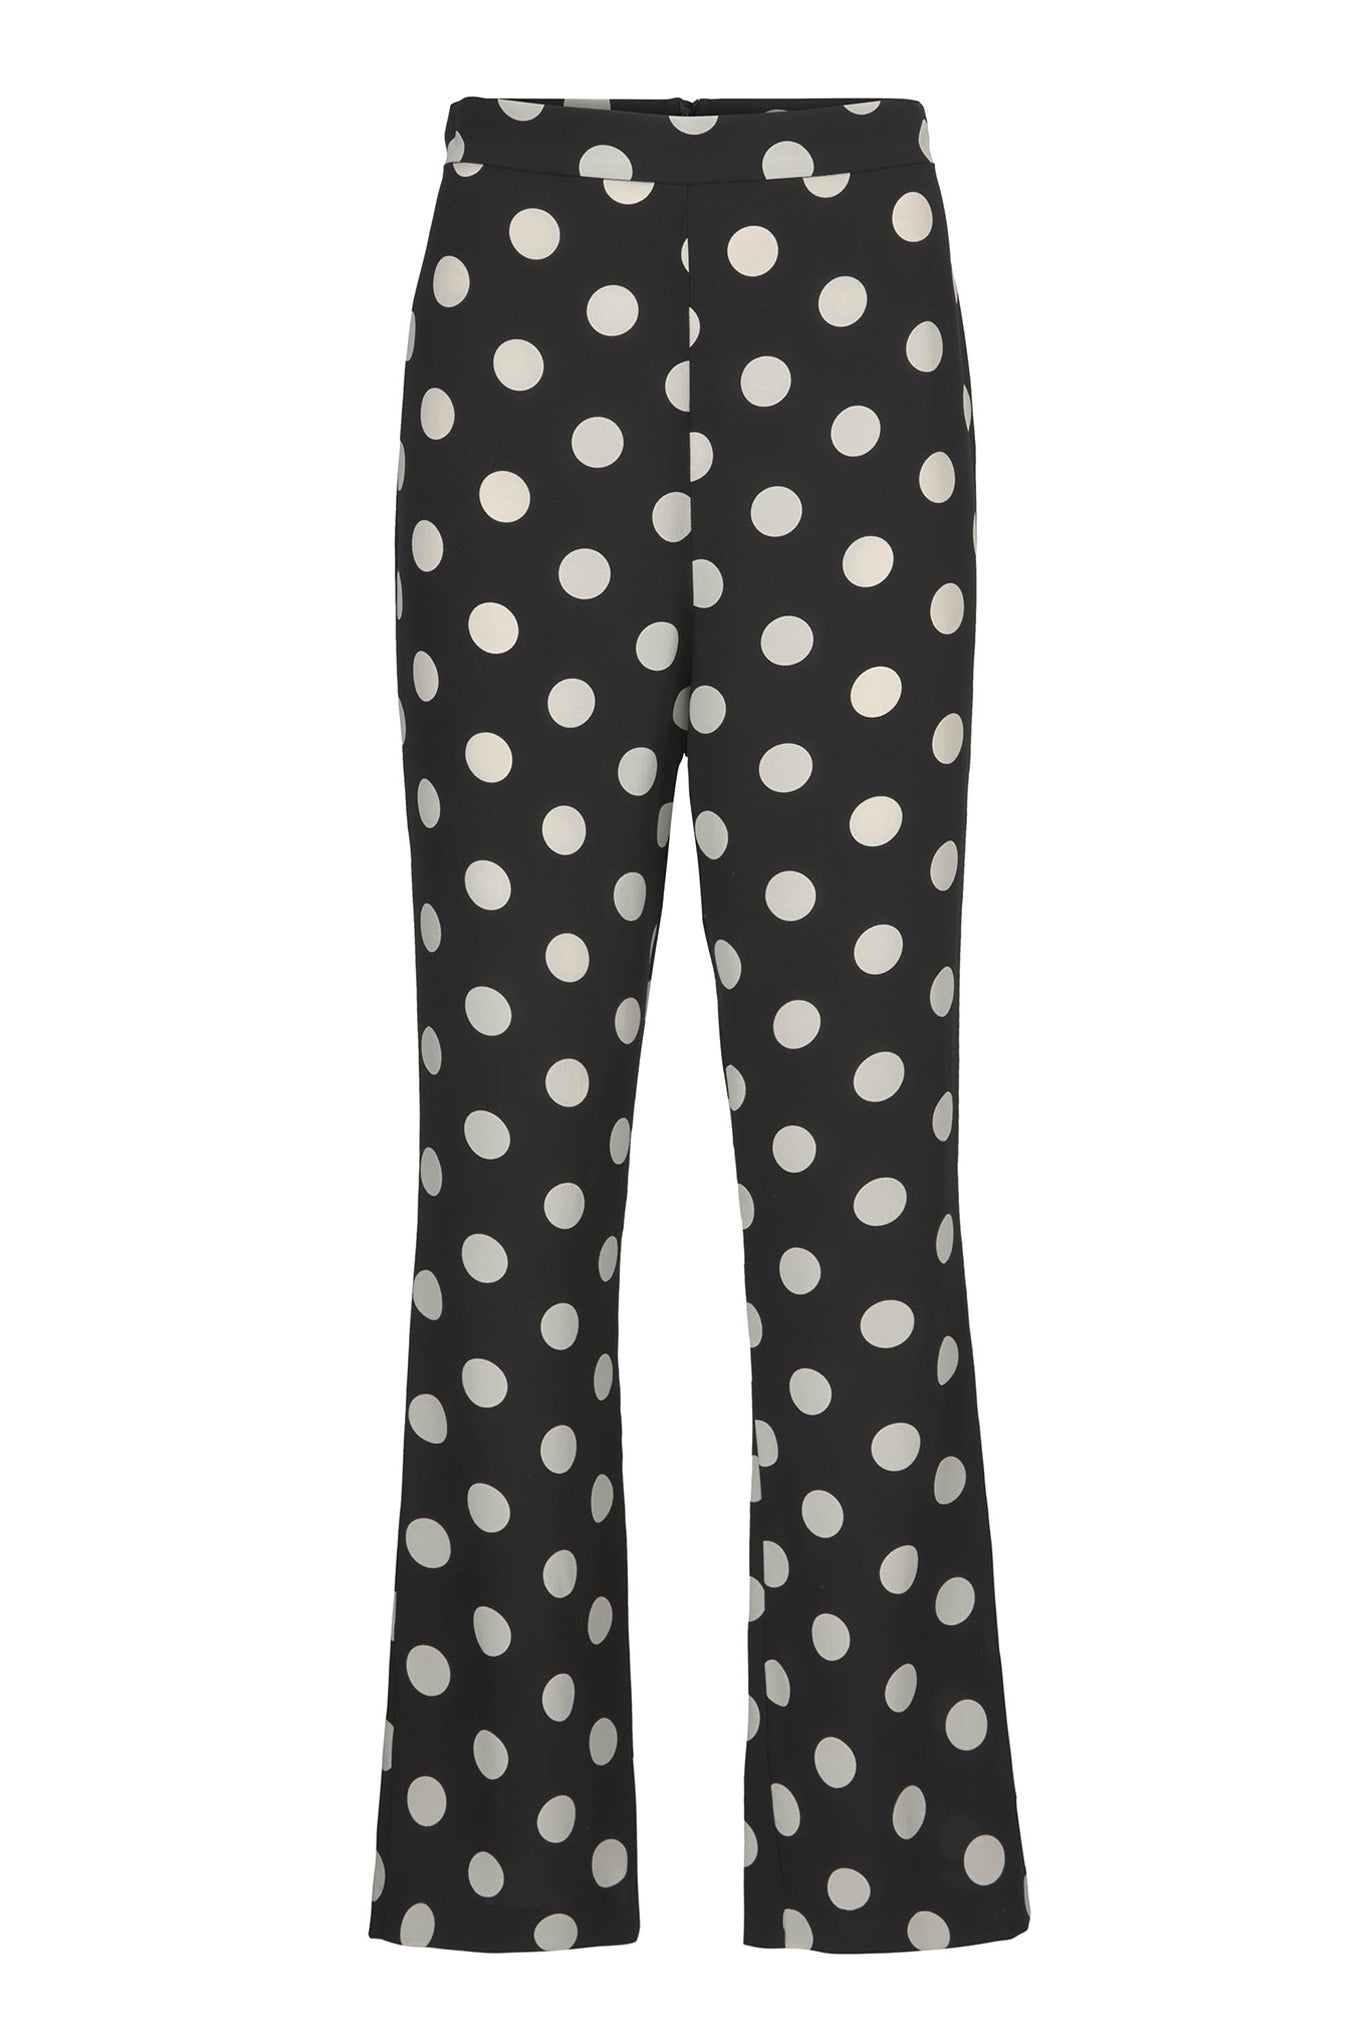 Curtis Pants - Medium Dot